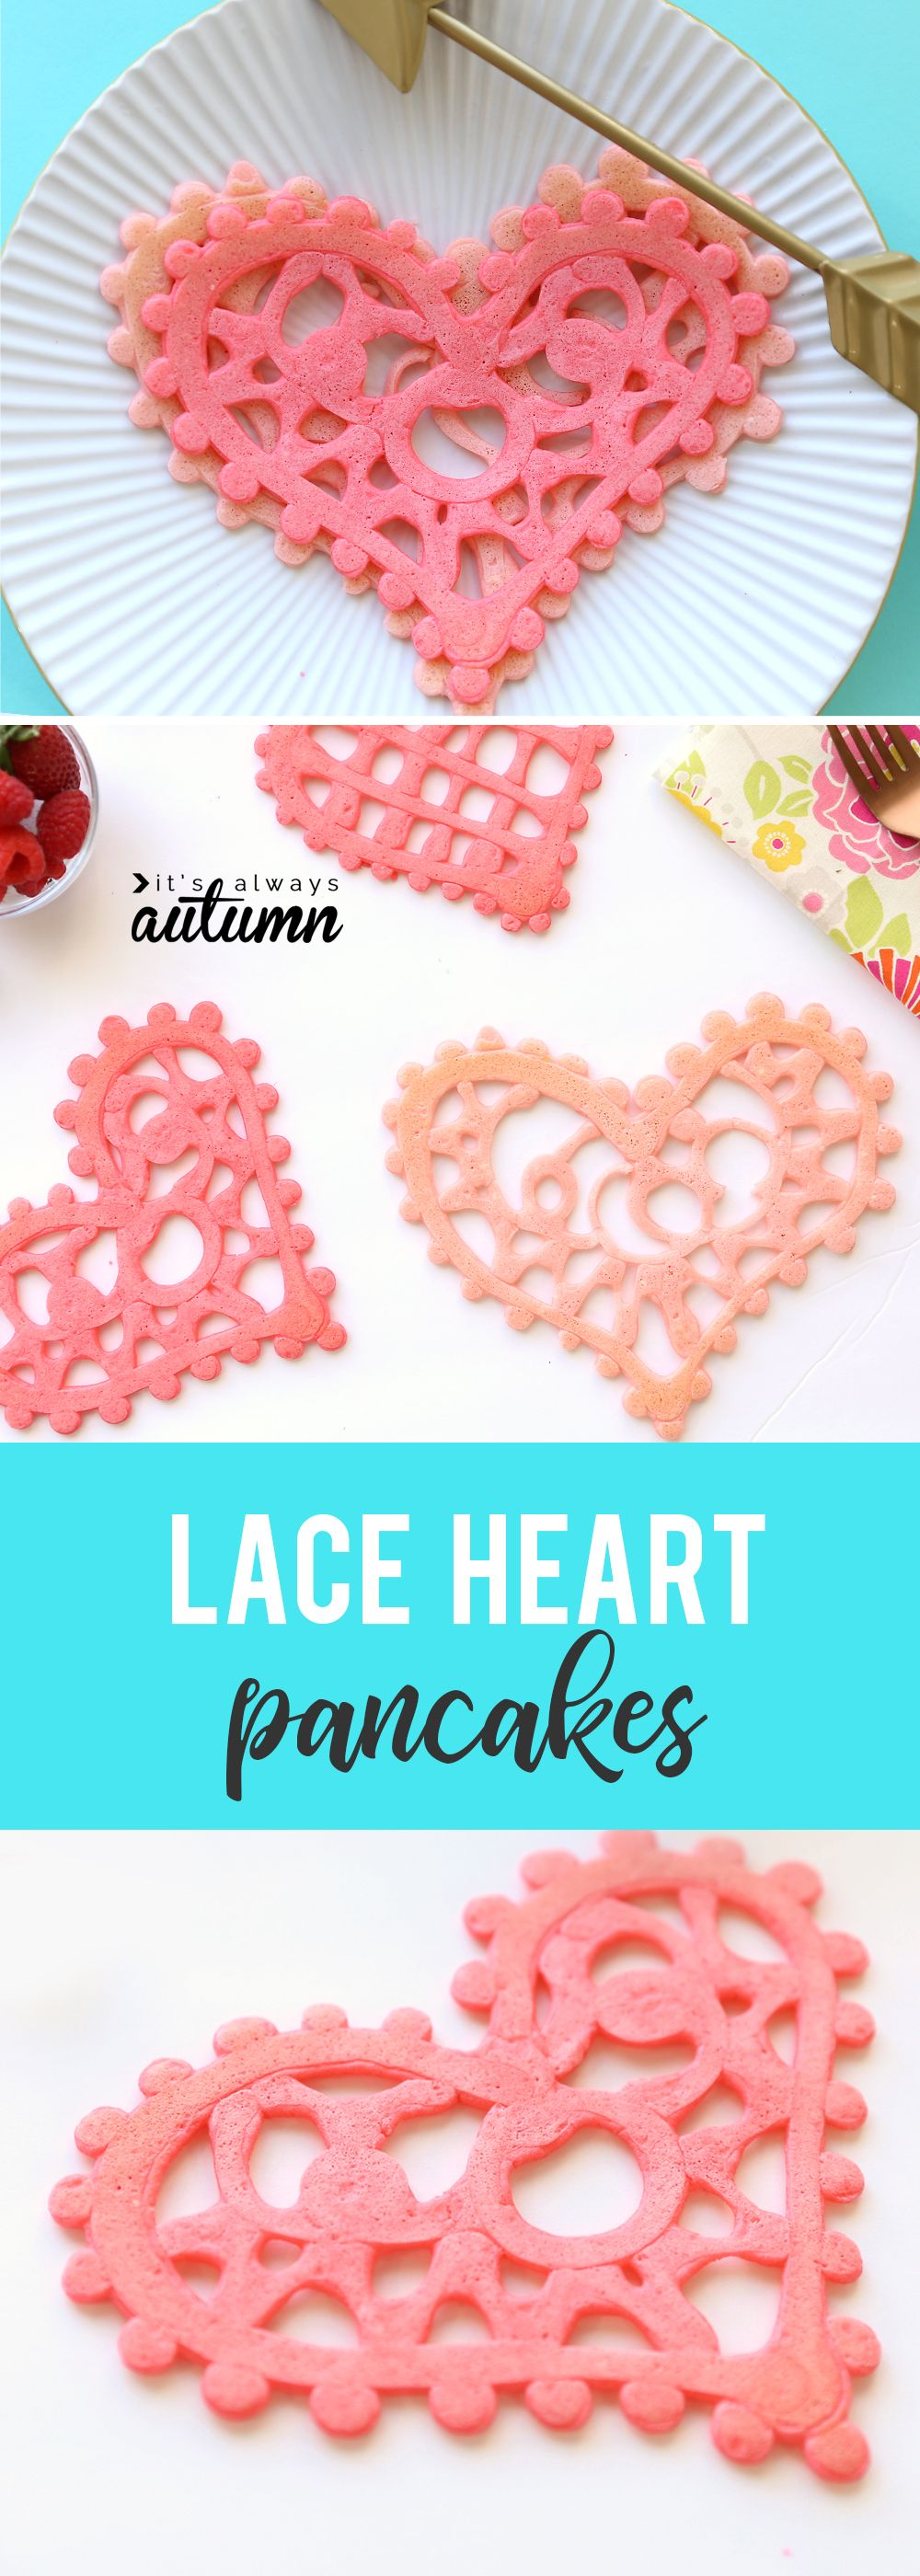 Lace heart shaped pancakes are a fun breakfast idea for Valentine's Day! Valentines recipe to make with kids. #itsalwaysautumn #valentinesday #heartpancakes